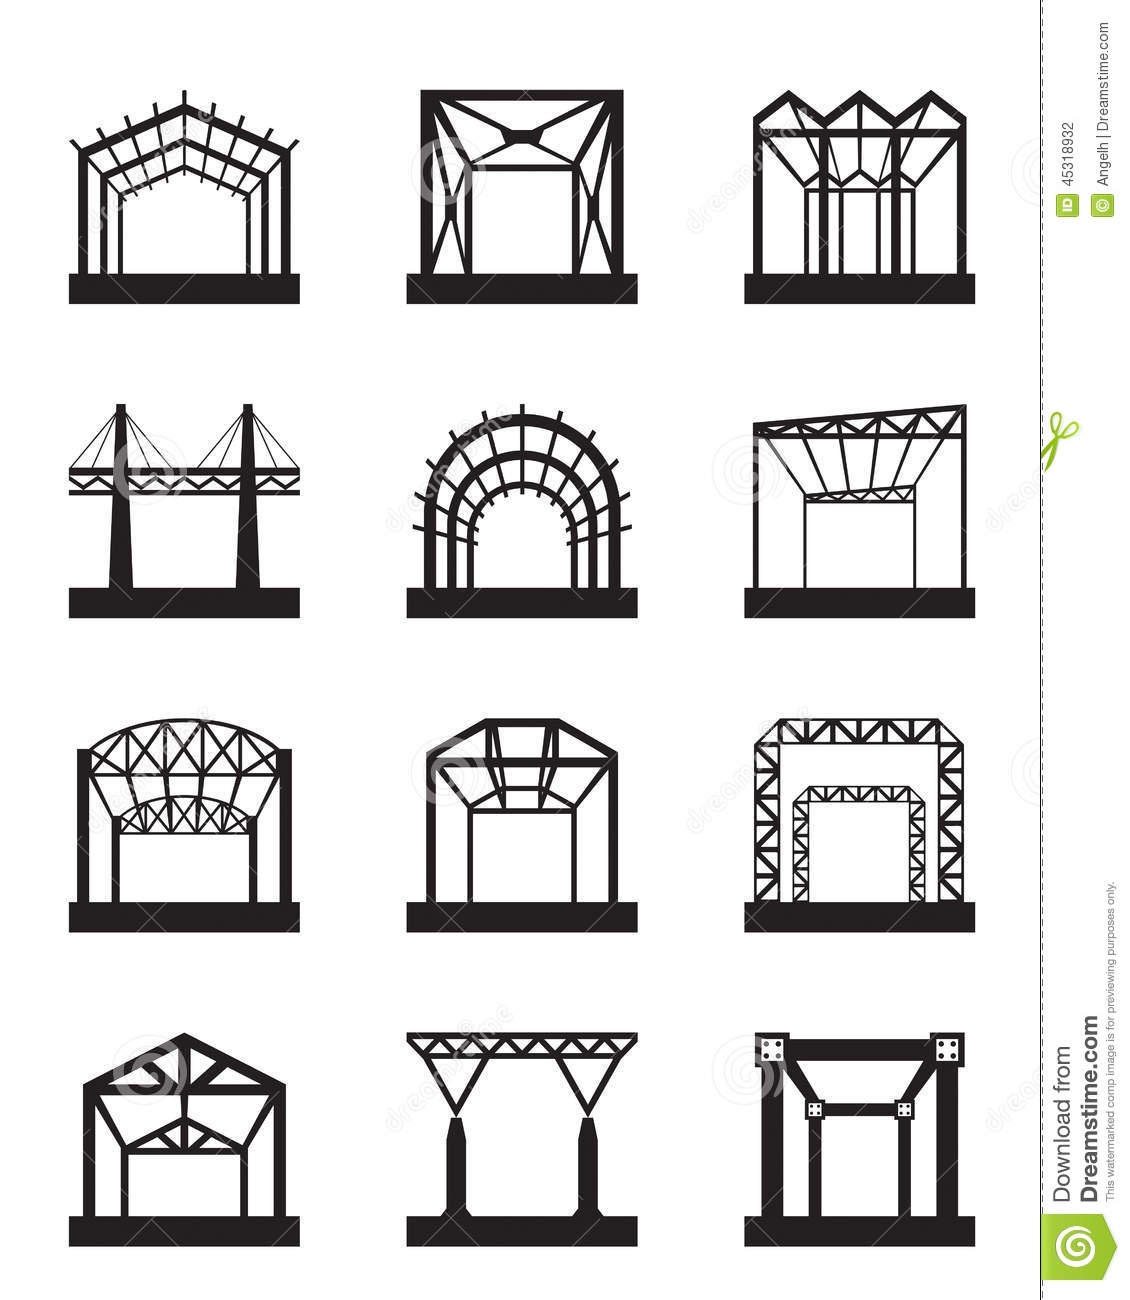 metal structures icon set stock vector